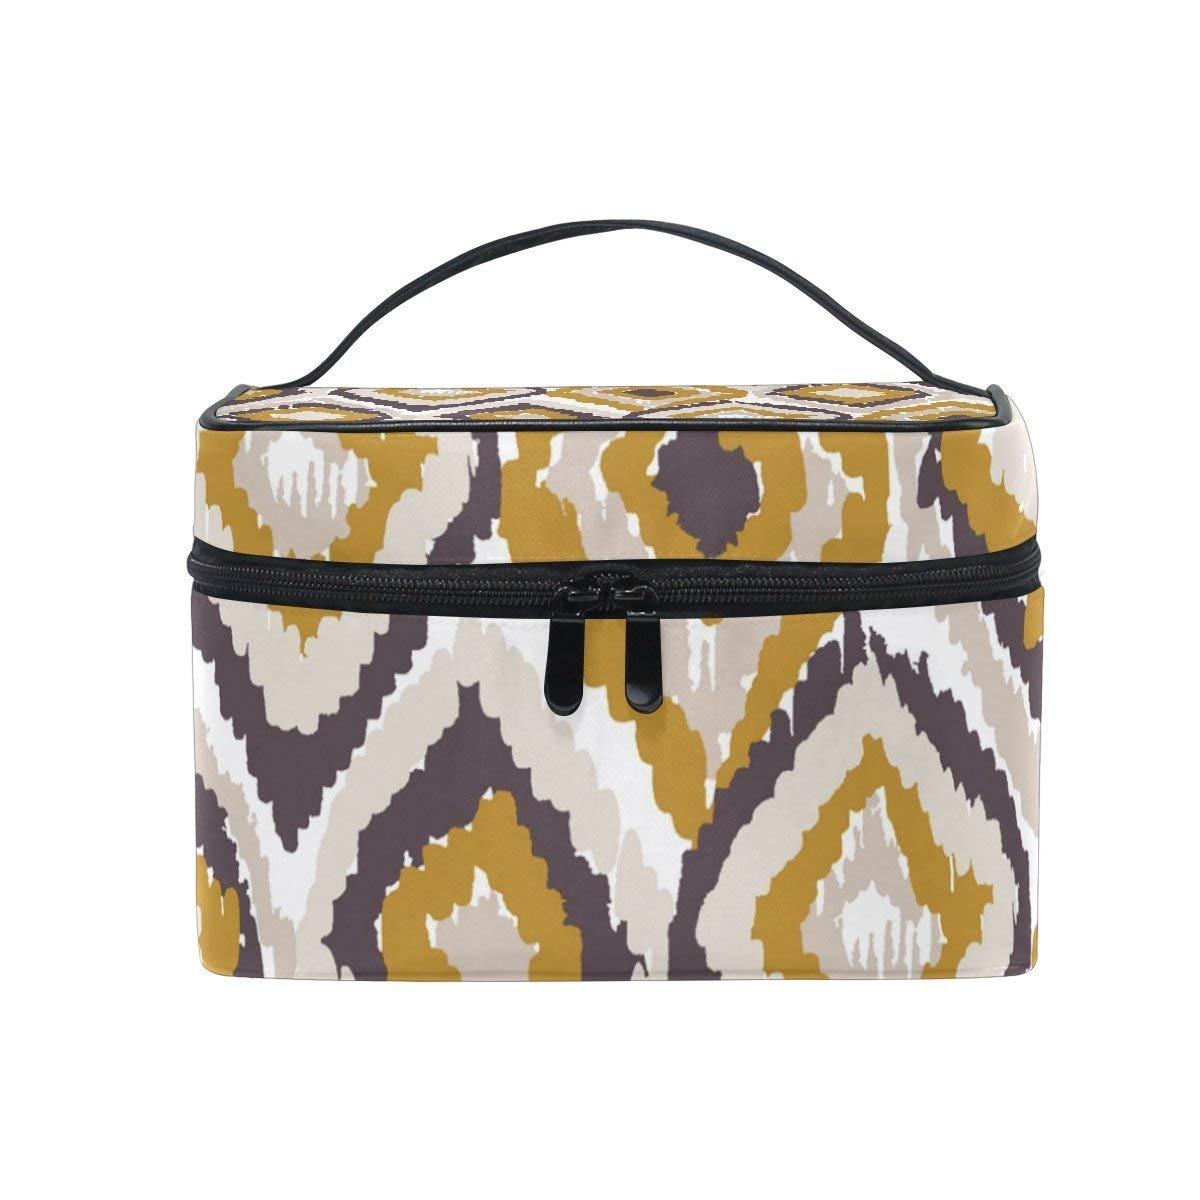 Cosmetic Case Bag Retro Indian Tribes Portable Travel Makeup Bag Toiletry Organizer